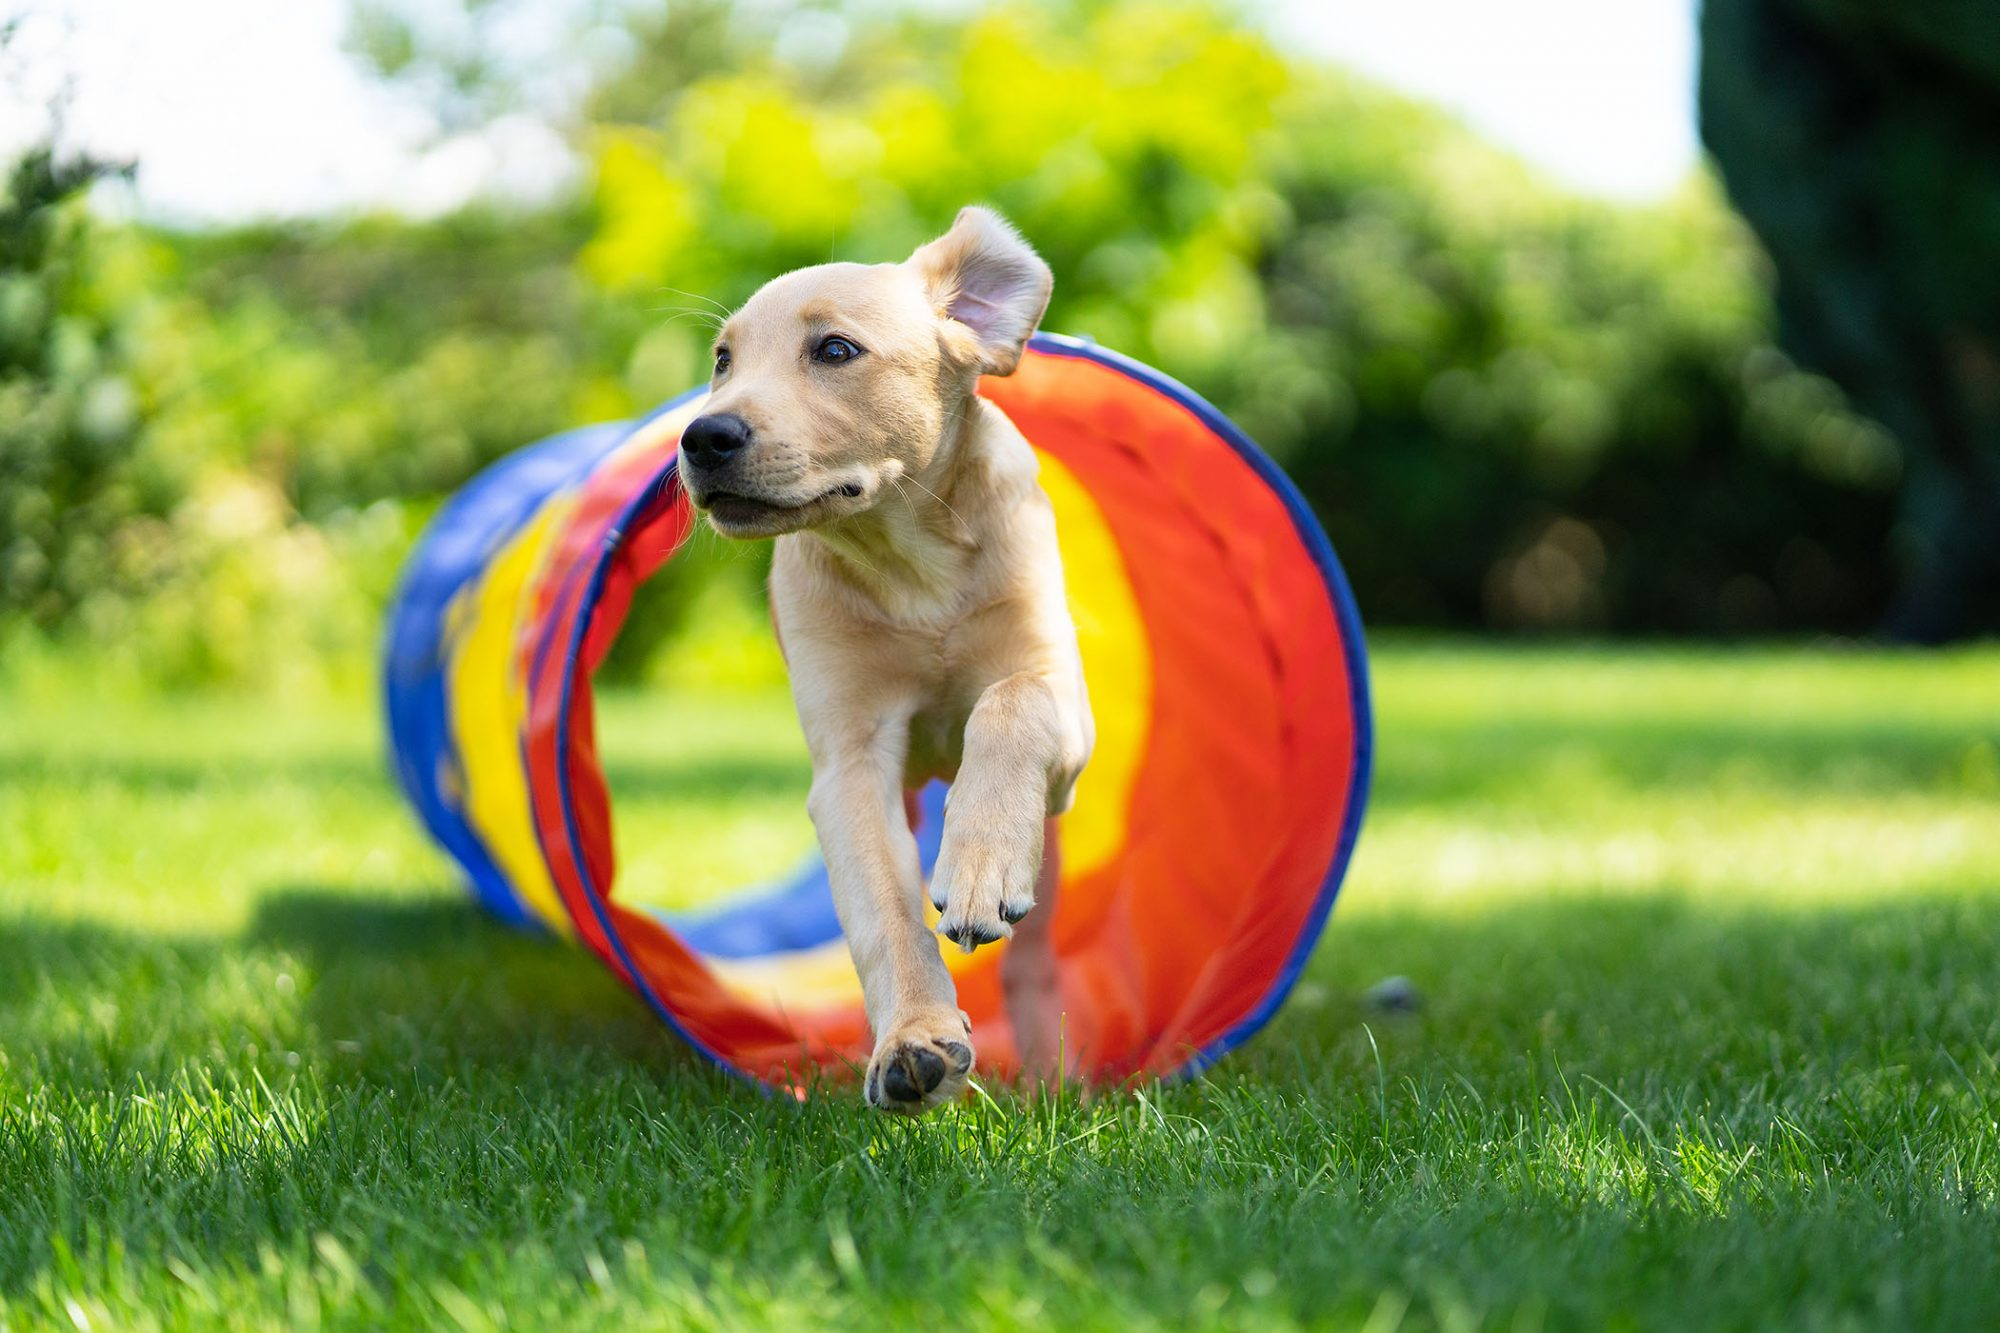 young dog running through a colorful agility tunnel outside on an agility course